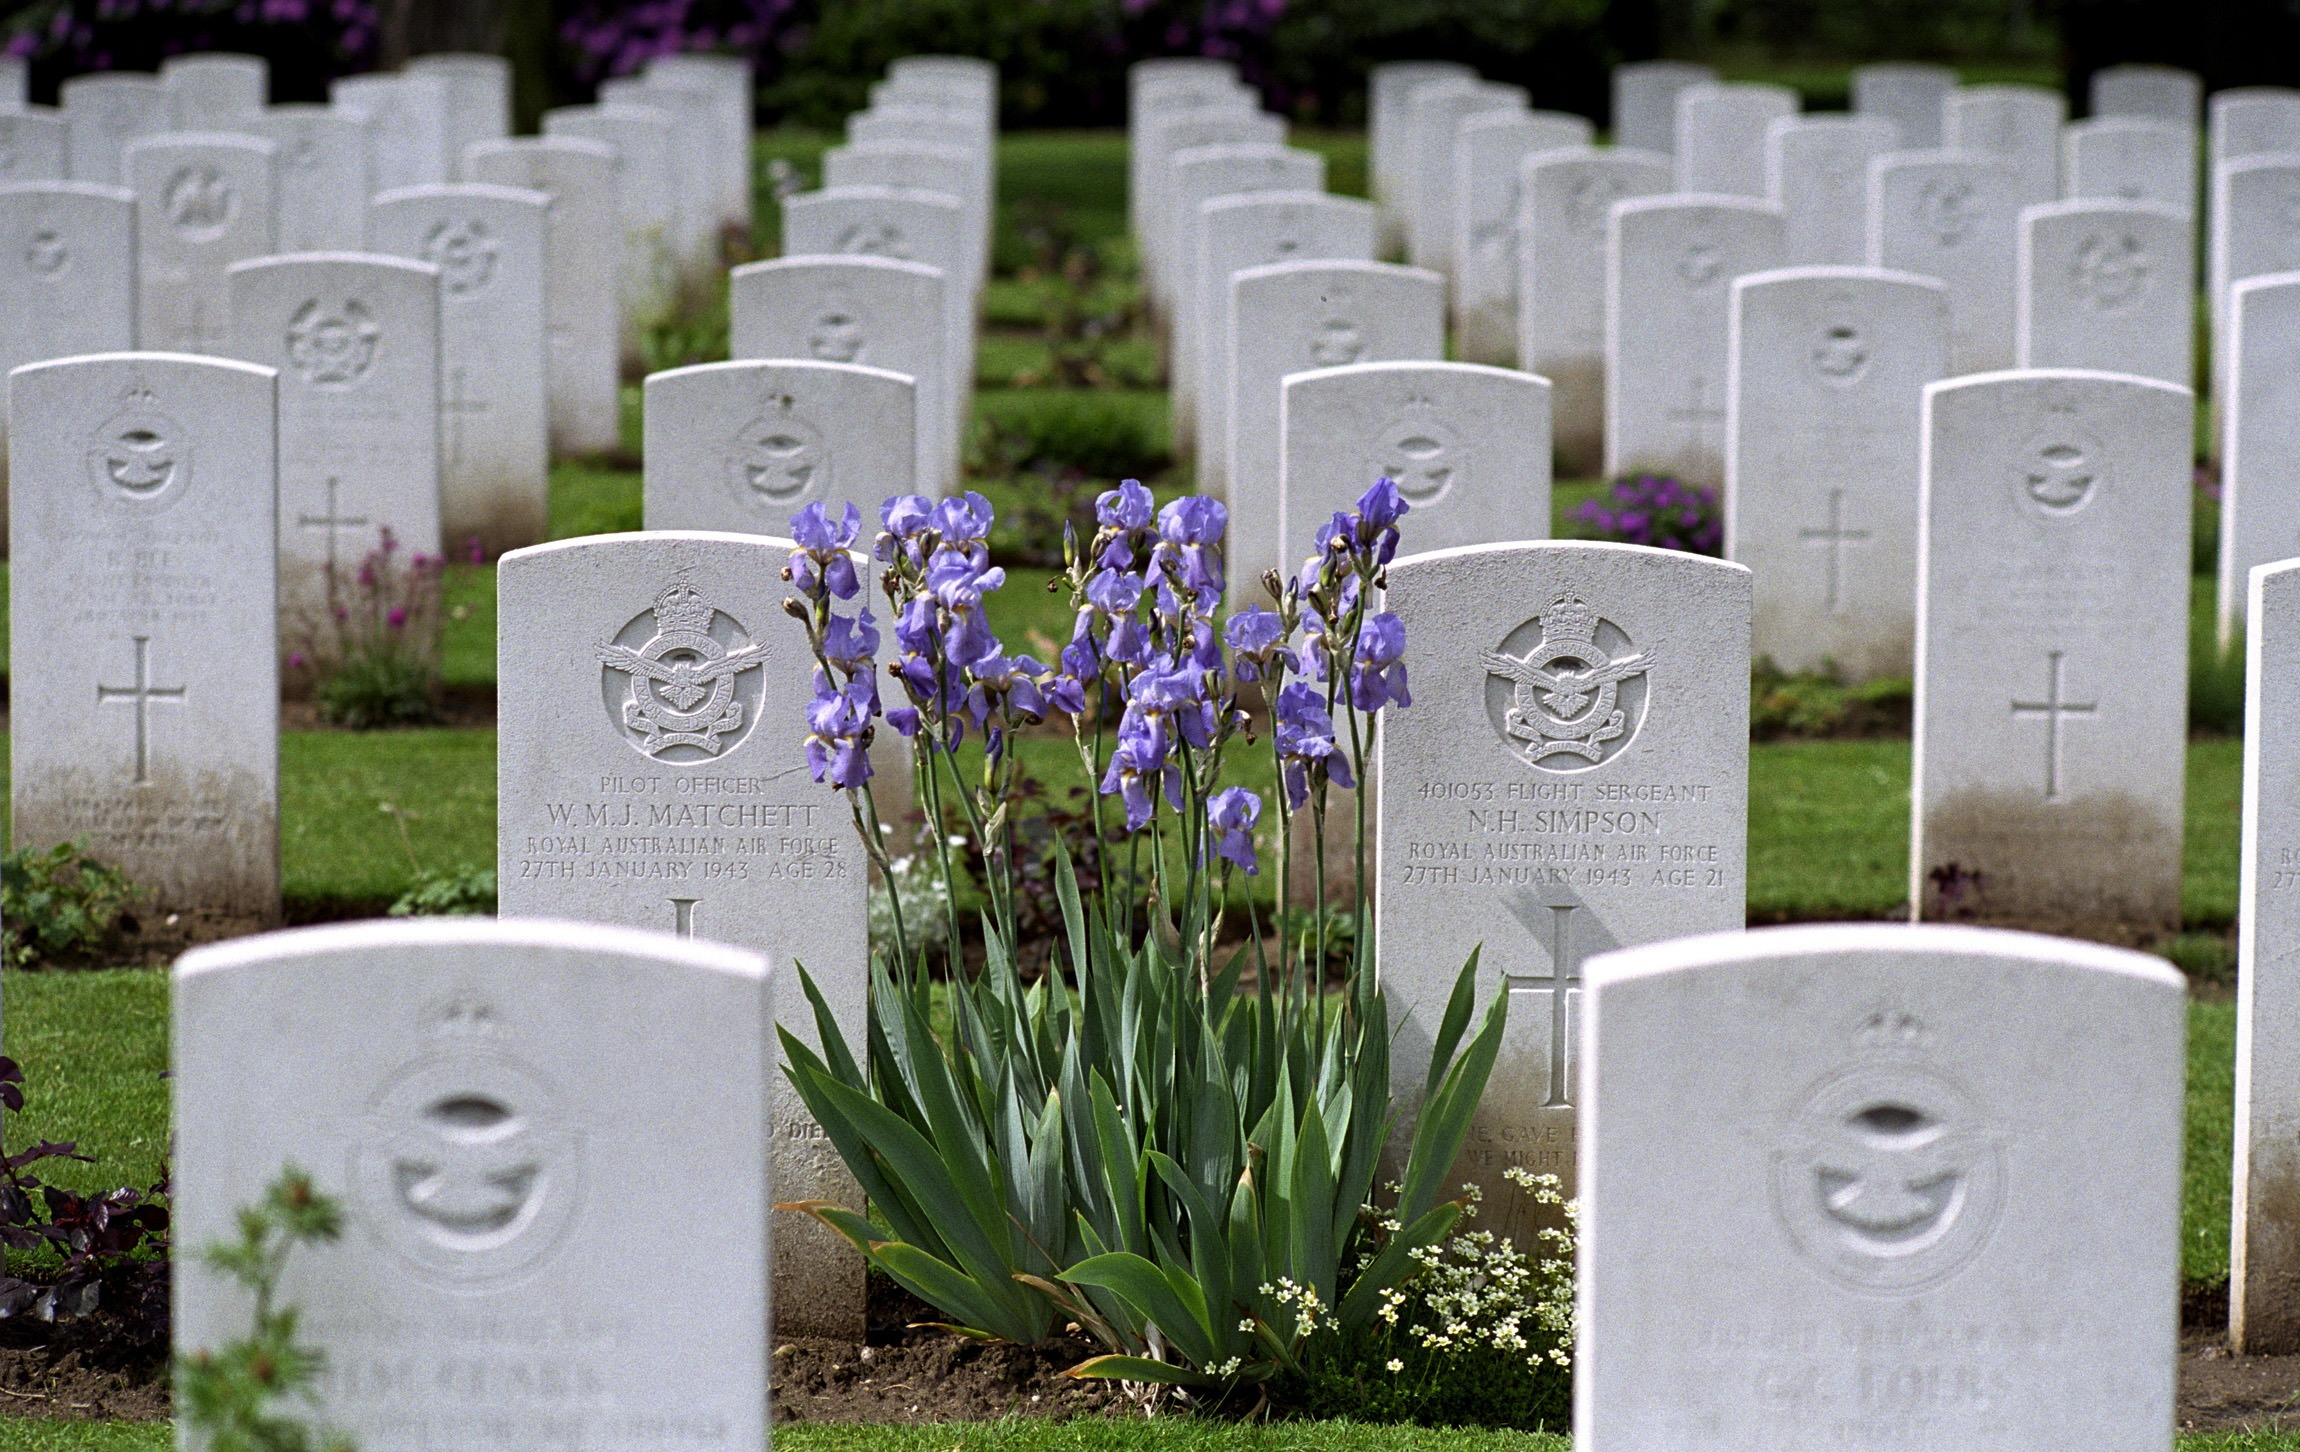 Reichswald Forest War Cemetery in Germany. Photo credit: Commonwealth War Graves Commission